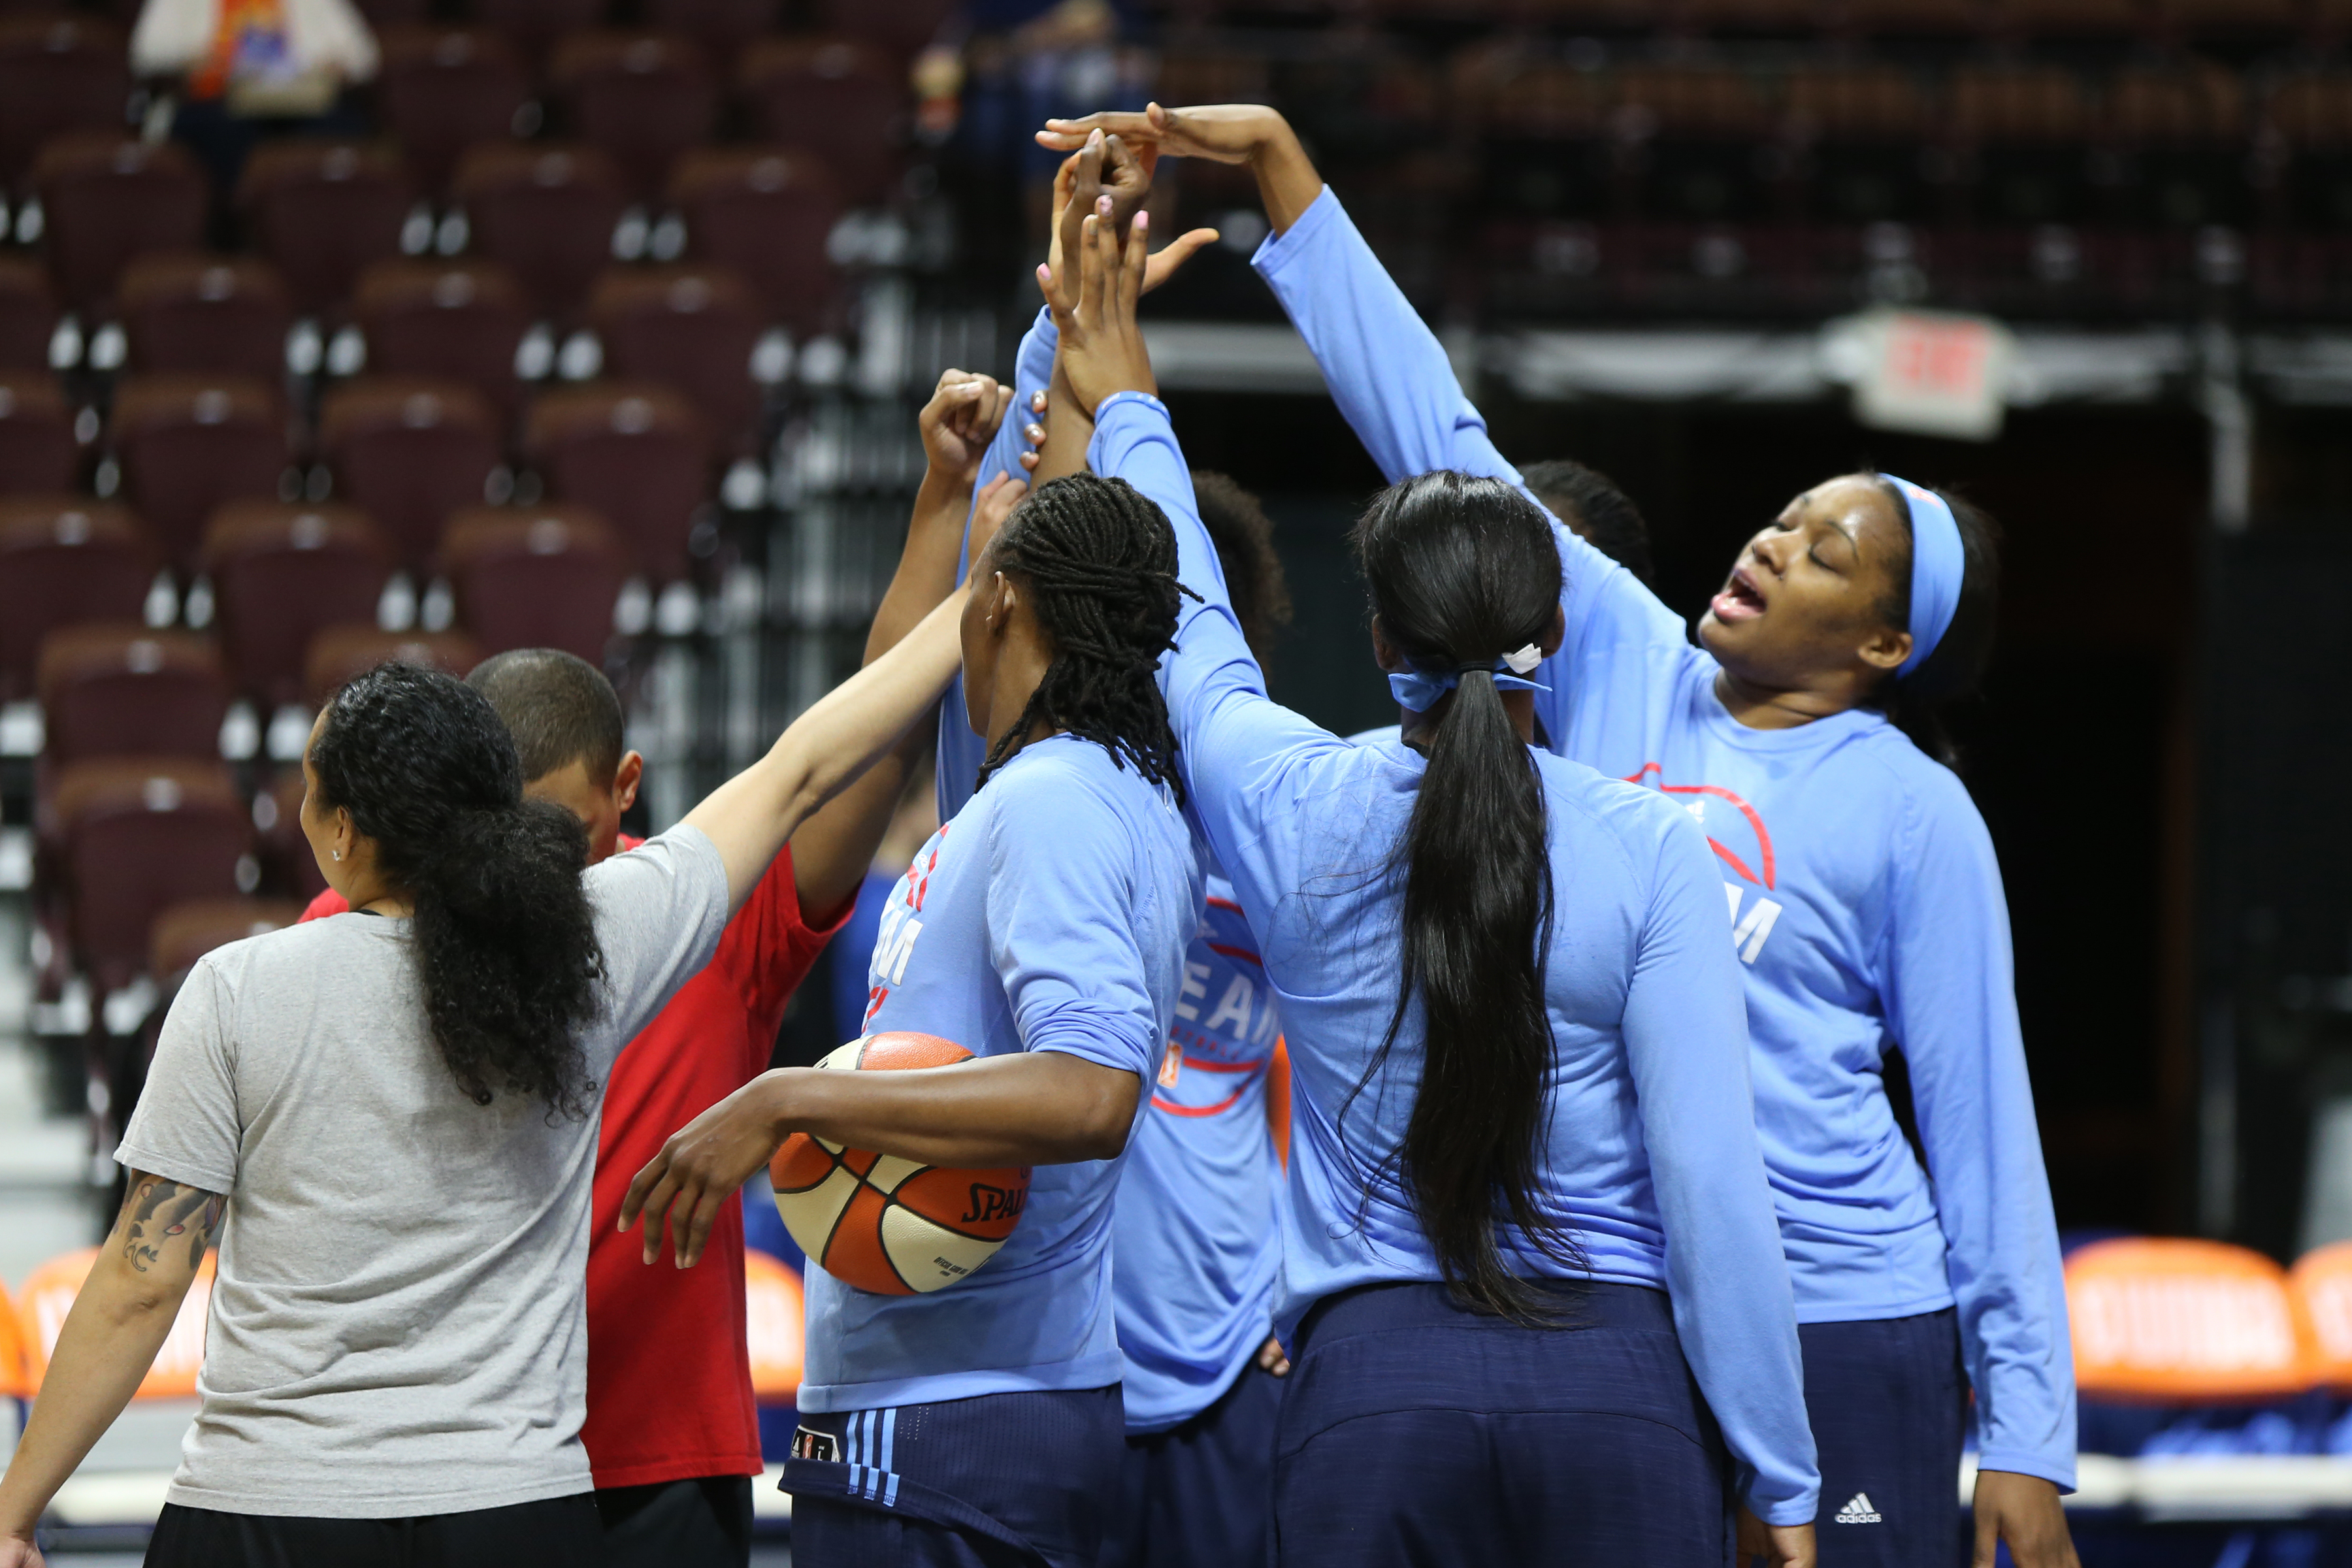 UNCASVILLE, CT - JUNE 3: The Atlanta Dream huddle before the game against the Connecticut Sun on June 3, 2016 at Mohegan Sun Arena in Uncasville, CT. NOTE TO USER: User expressly acknowledges and agrees that, by downloading and or using this Photograph, user is consenting to the terms and conditions of the Getty Images License Agreement. Mandatory Copyright Notice: Copyright 2016 NBAE (Photo by Chris Marion/NBAE via Getty Images)